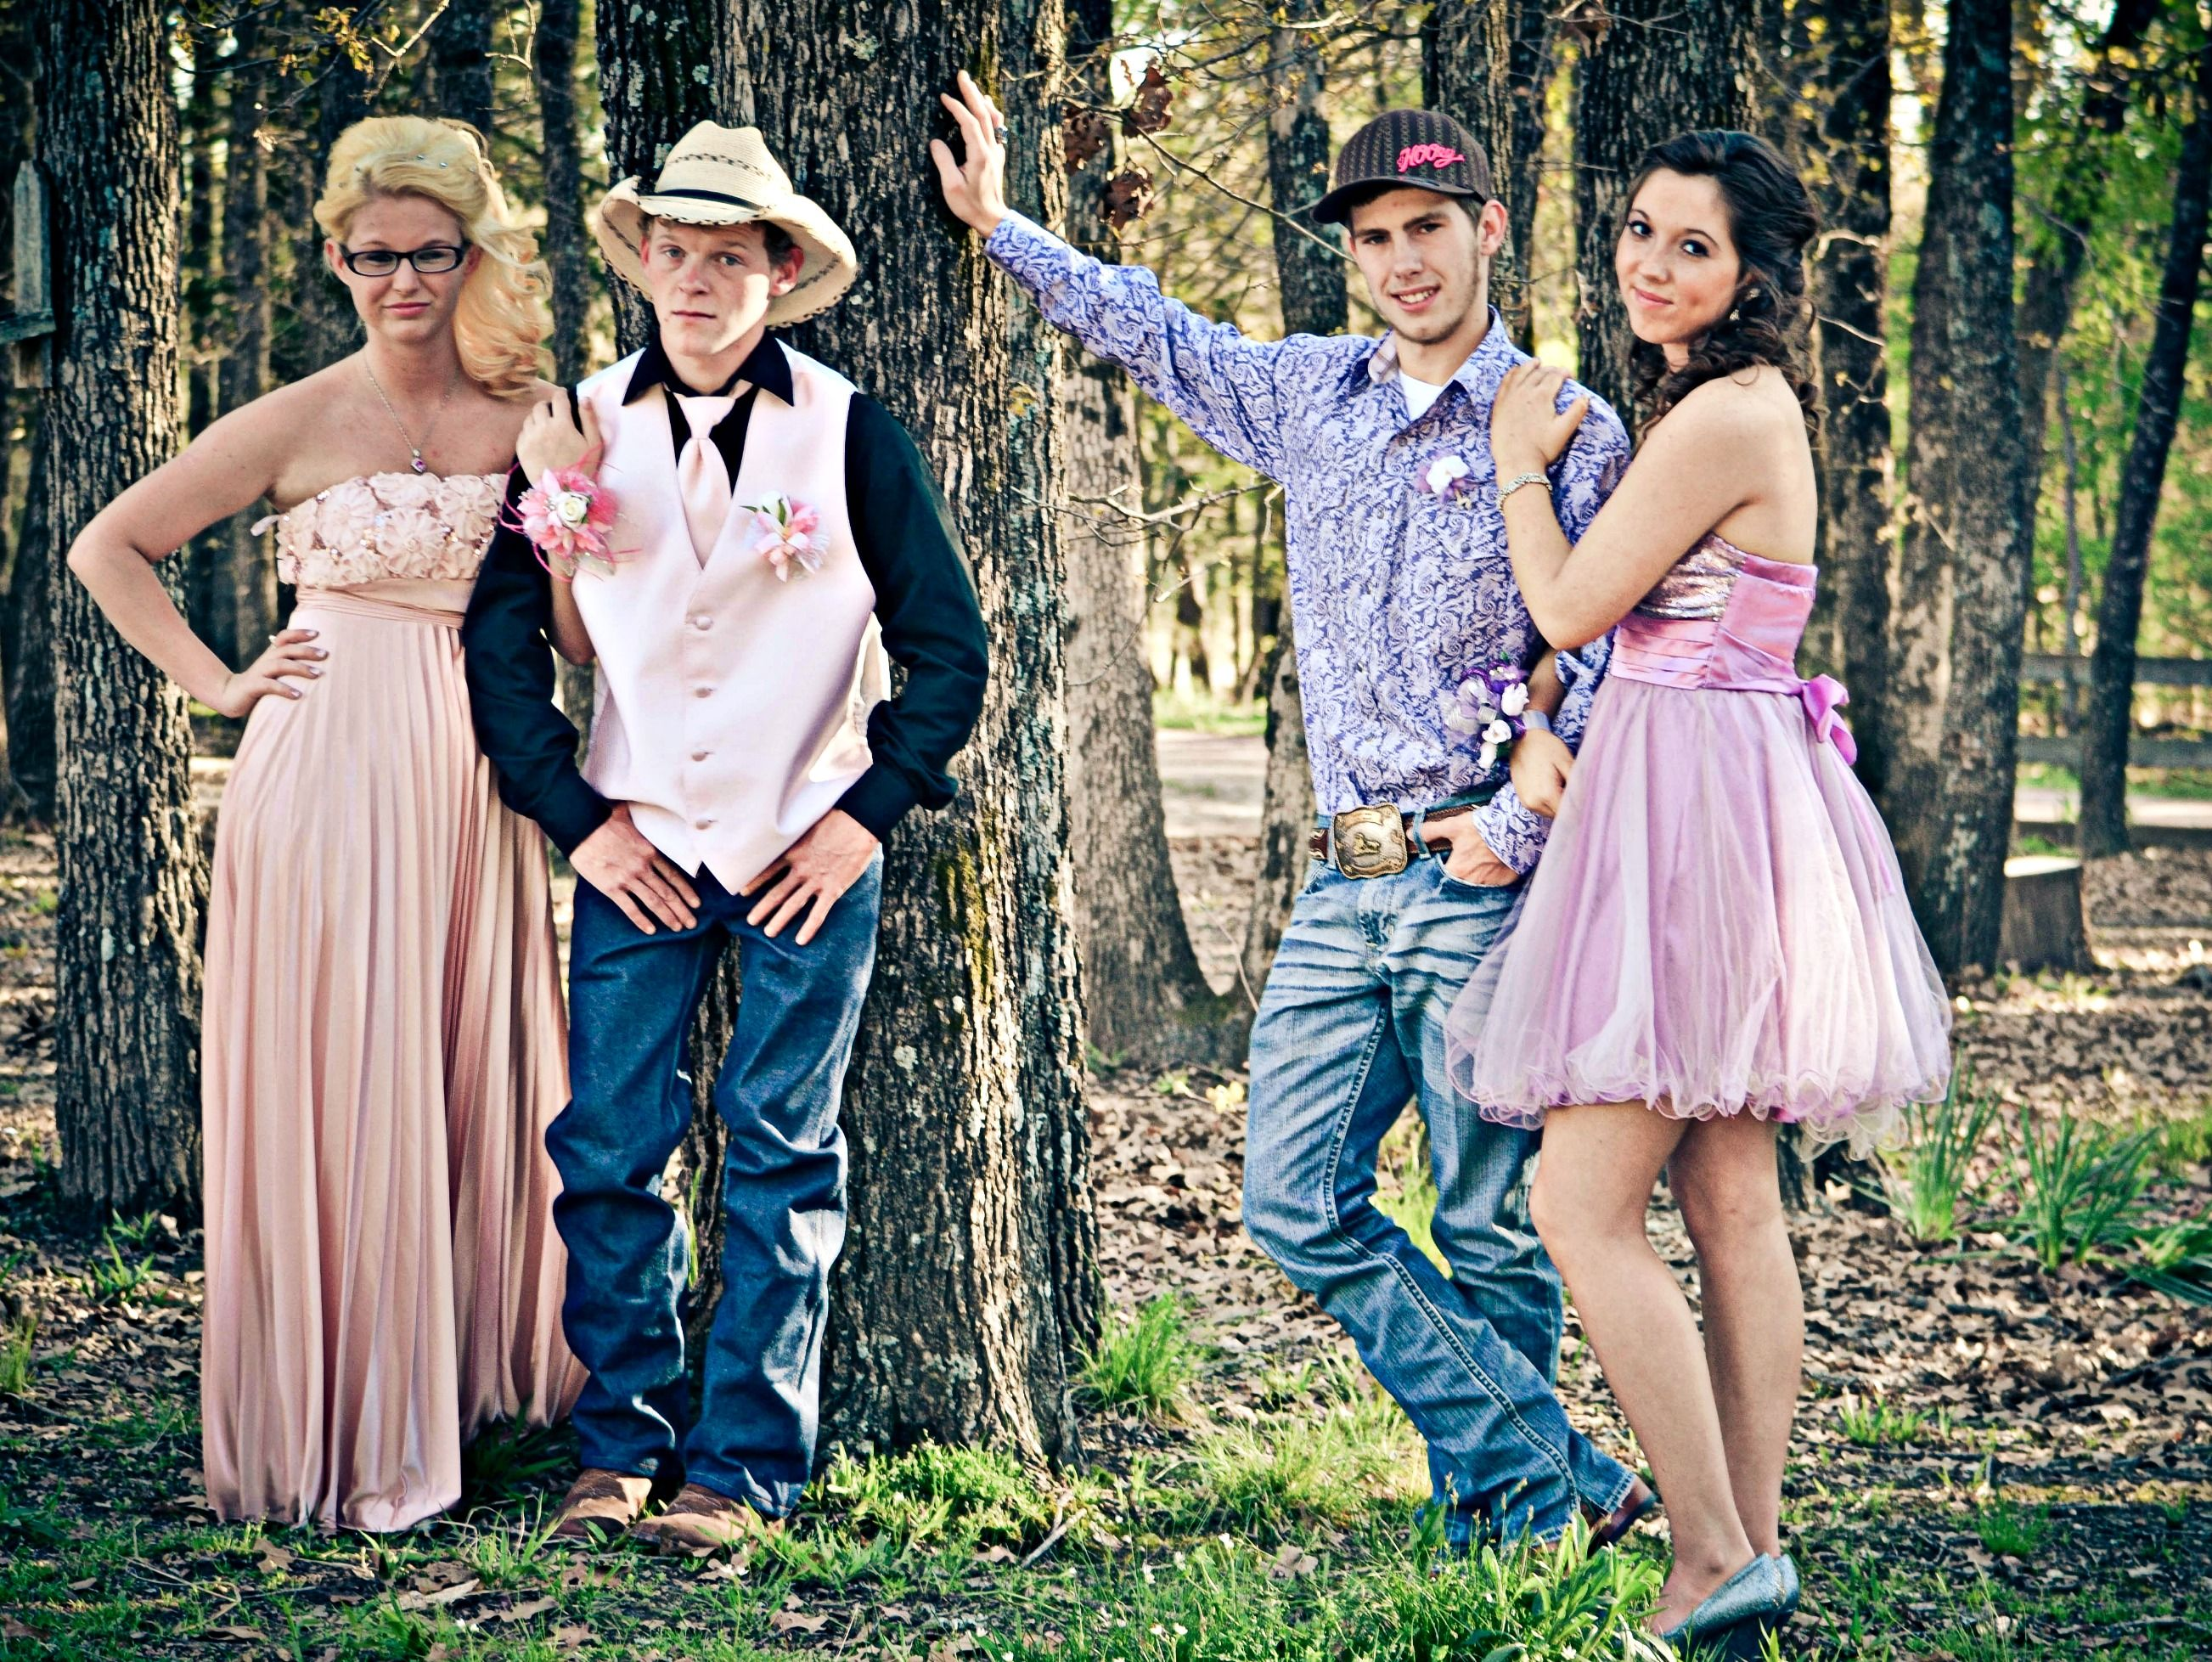 c589cd99a6 prom it up country style!